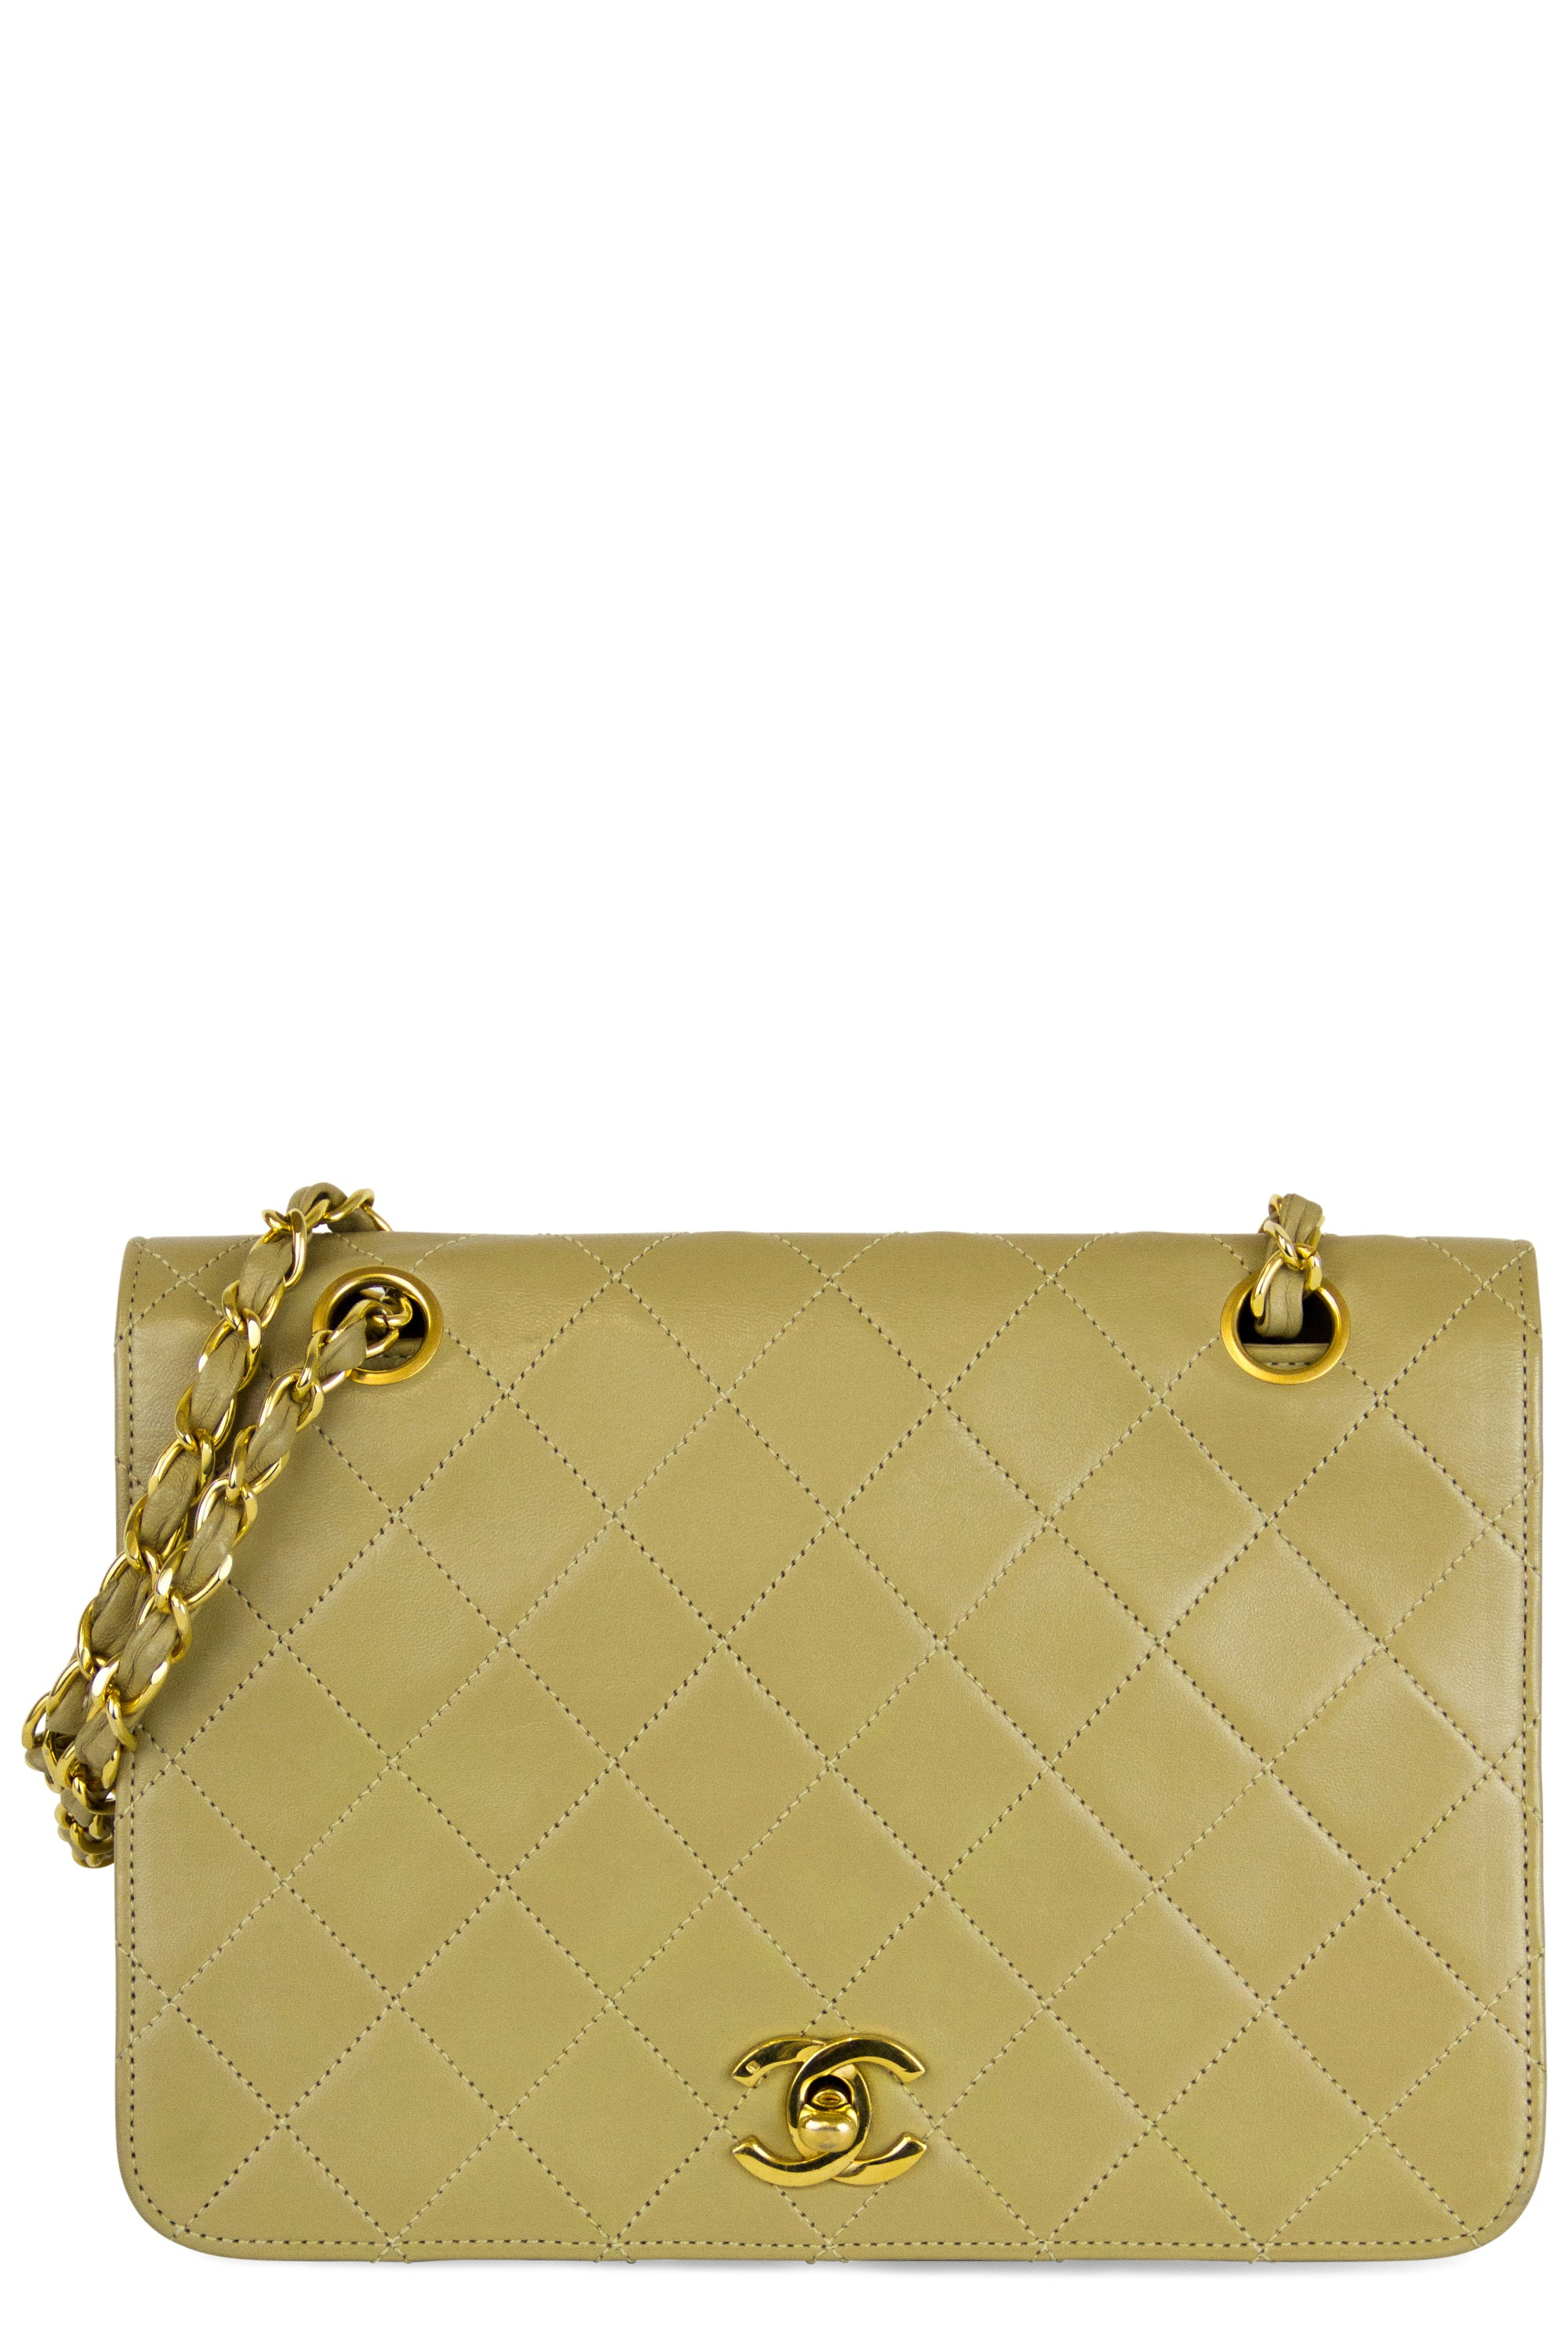 Chanel Vintage Flap Bag Frontalansicht Beige Gold Hardware